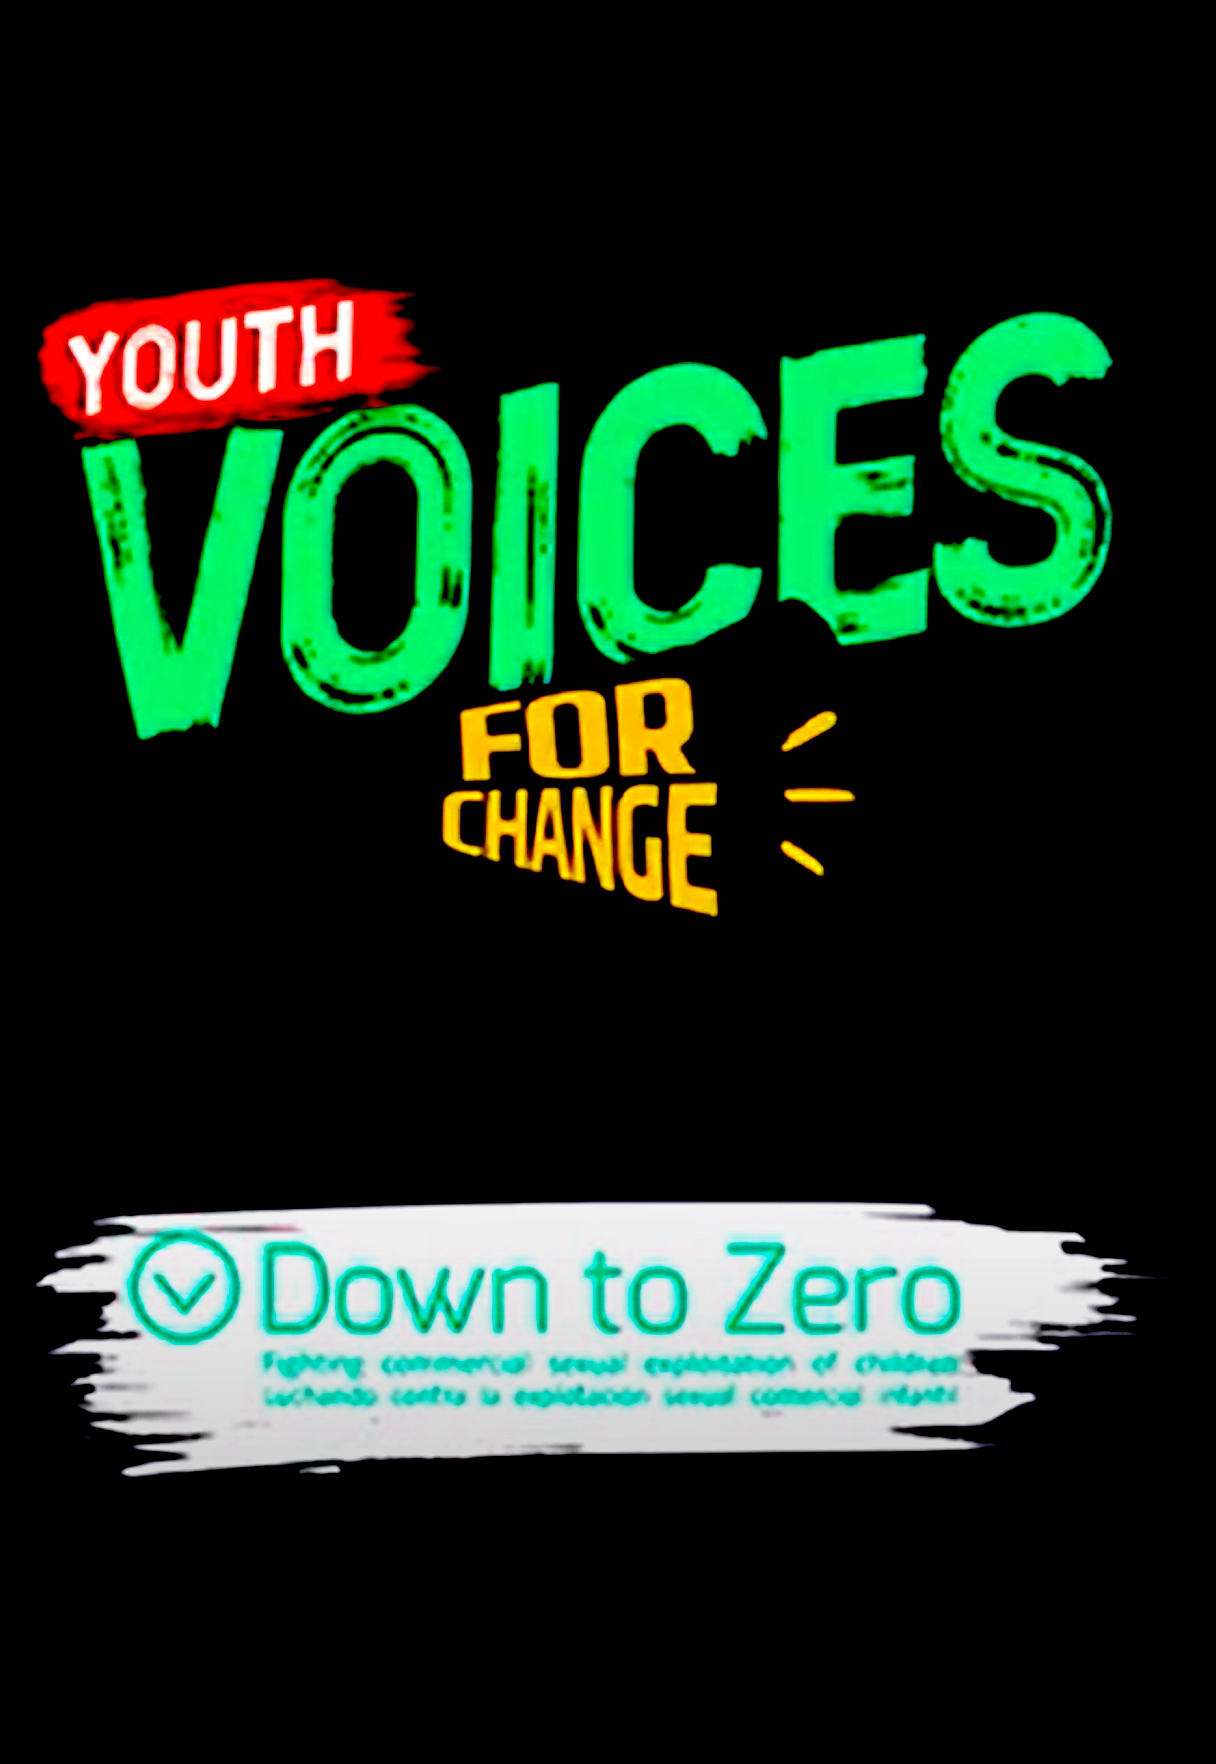 Voice for Change